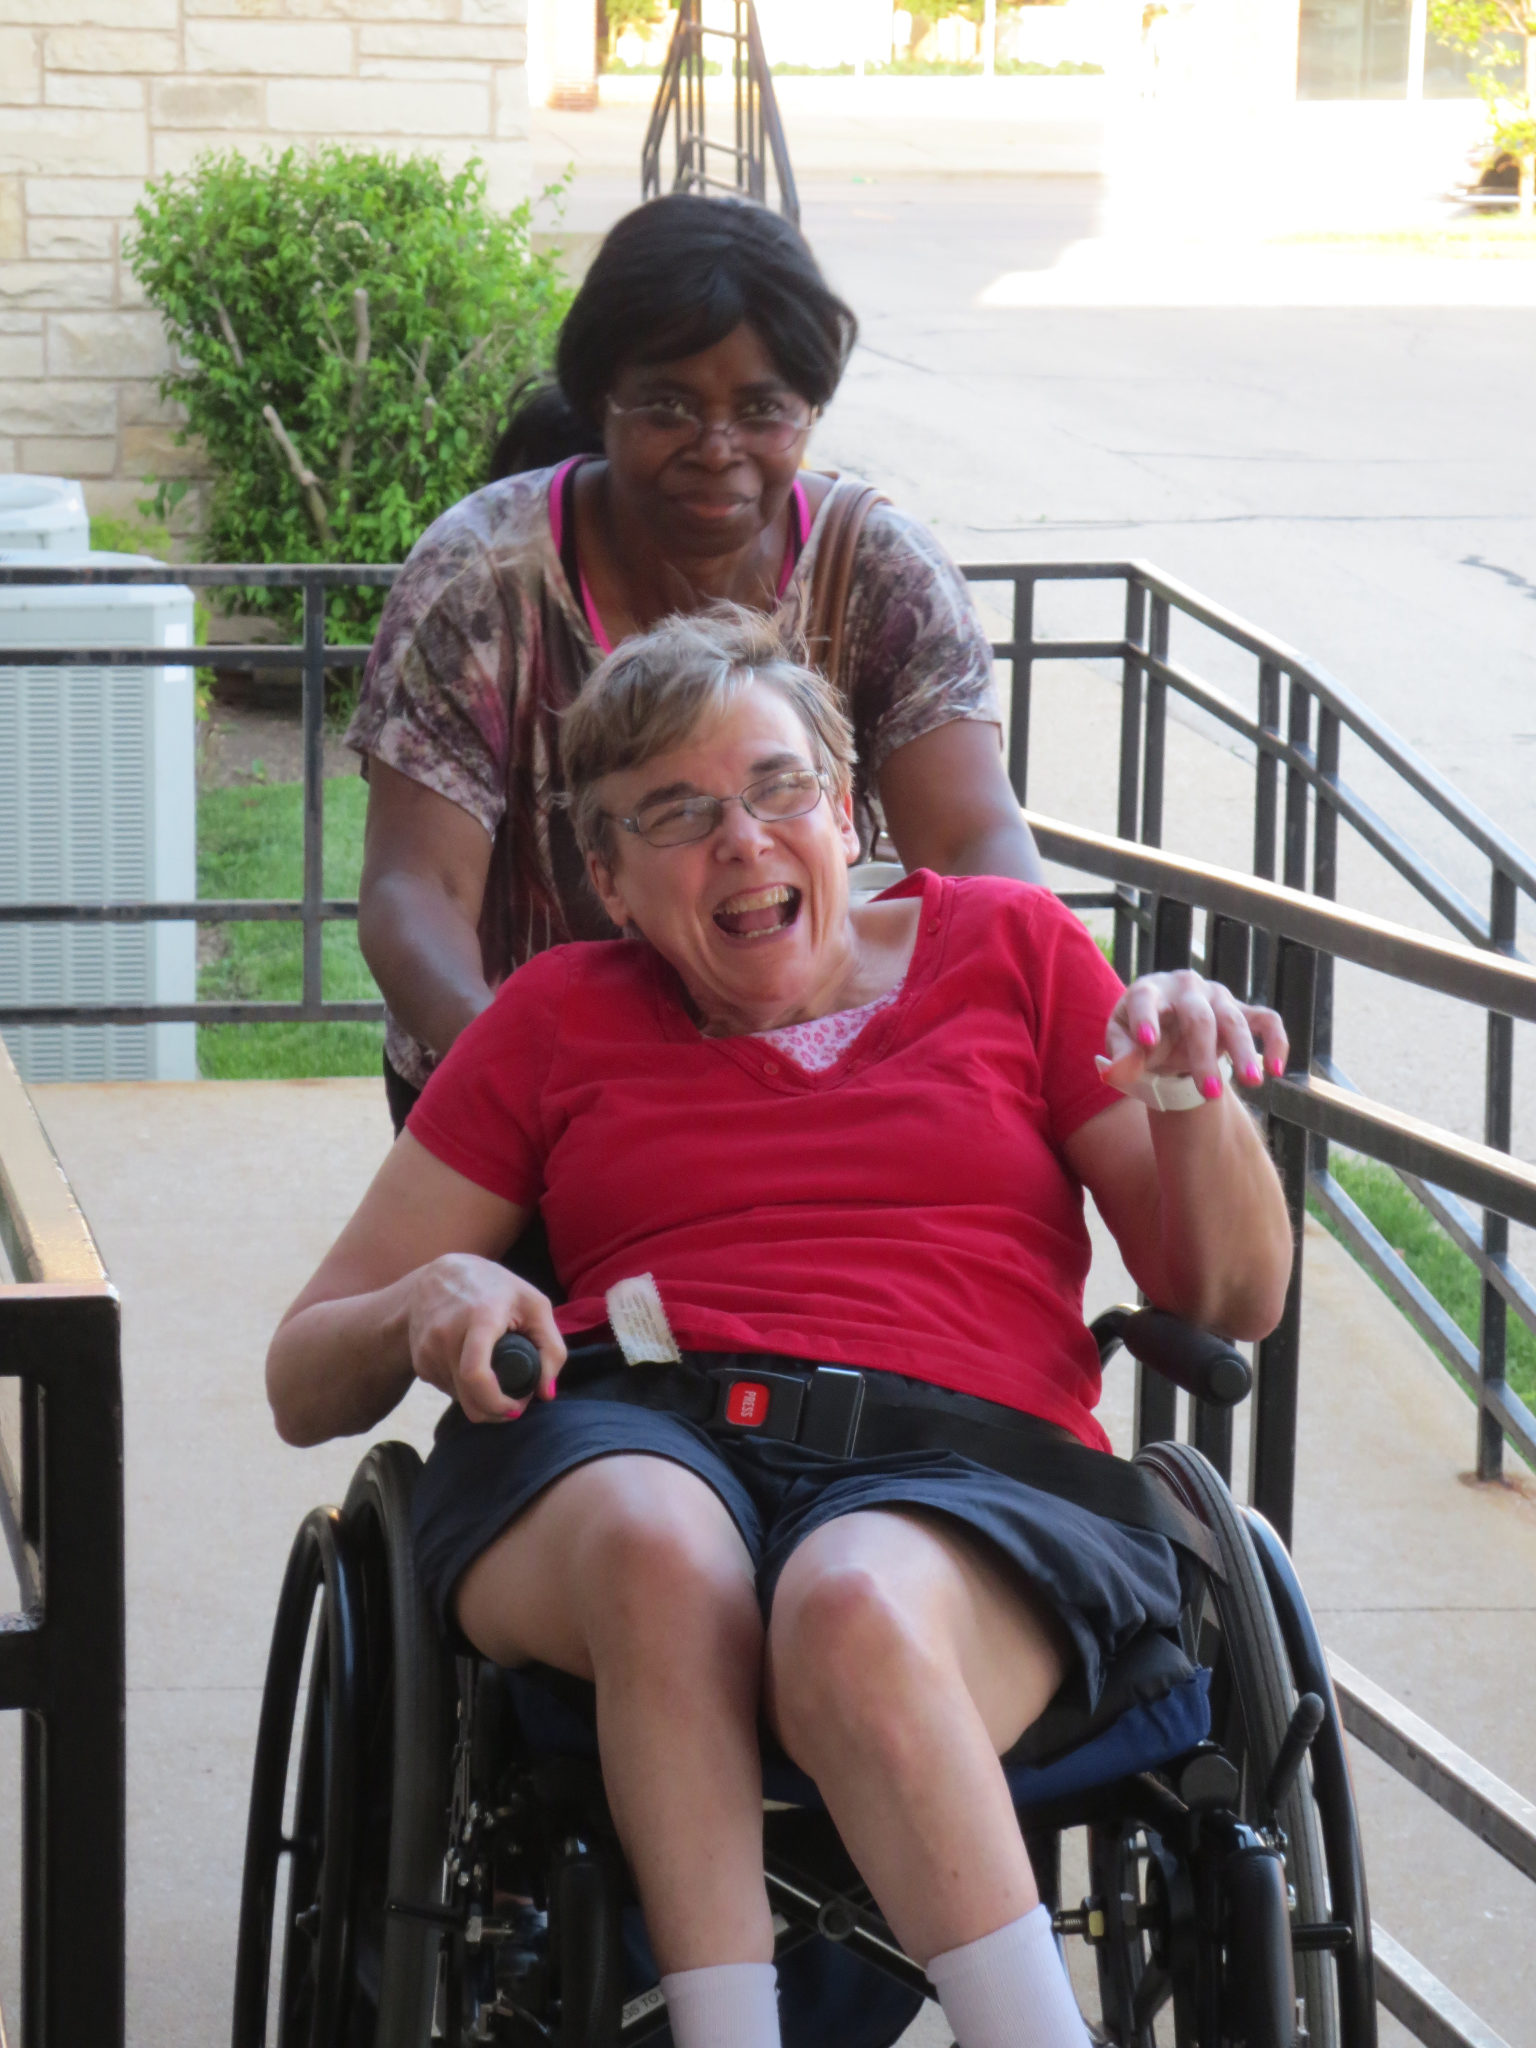 Caregiver pushing a wheelchair containing a disabled person